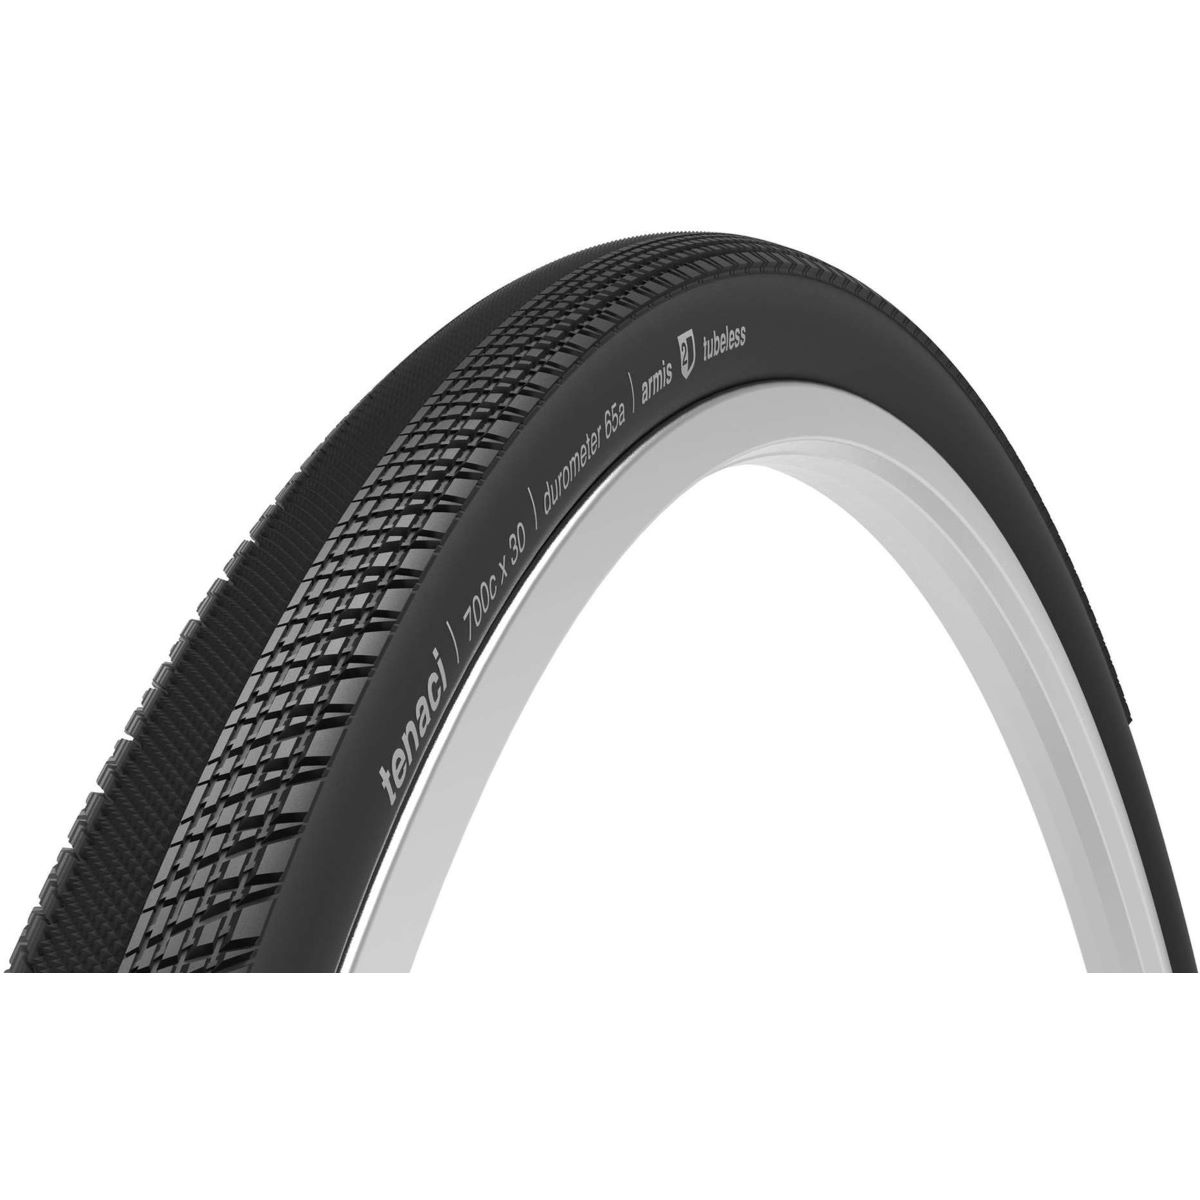 Ere Research Tenaci Tubeless 120TPI Folding MTB Tyre - Cubiertas